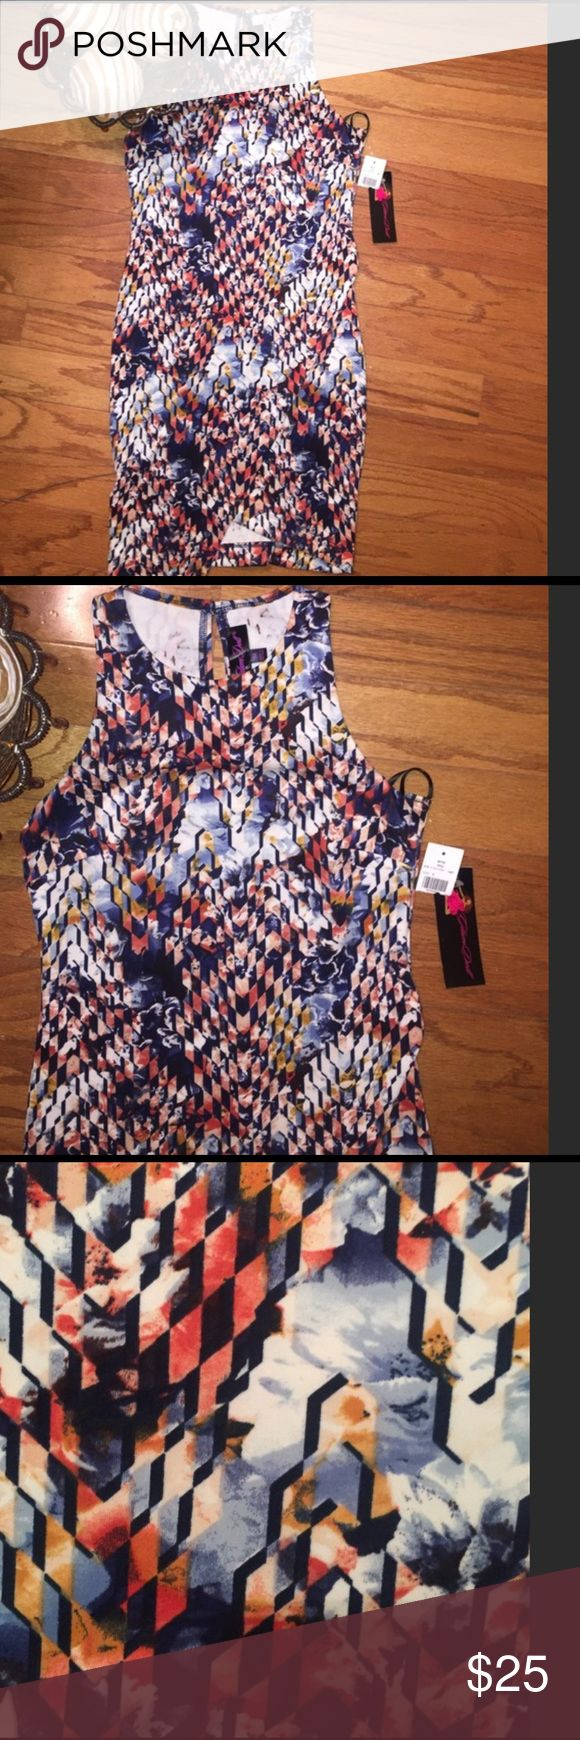 🖌NWT Glam Doll Bodycon Dress🖌 This is a printed Bodycon dress. Pulls overhead with one button in back at neck. Asymmetric, flattering with lots of give, however if your larger than a medium it will not fall right. Colors include Ivy, blue, coral according to tag. 95% polyester 5% spandex. 32 1/2 inches at shortest part and 34 1/2 inches at the longest part of the skirt. Pair with Jean blazer and some boots you ready for fall... Dresses Midi